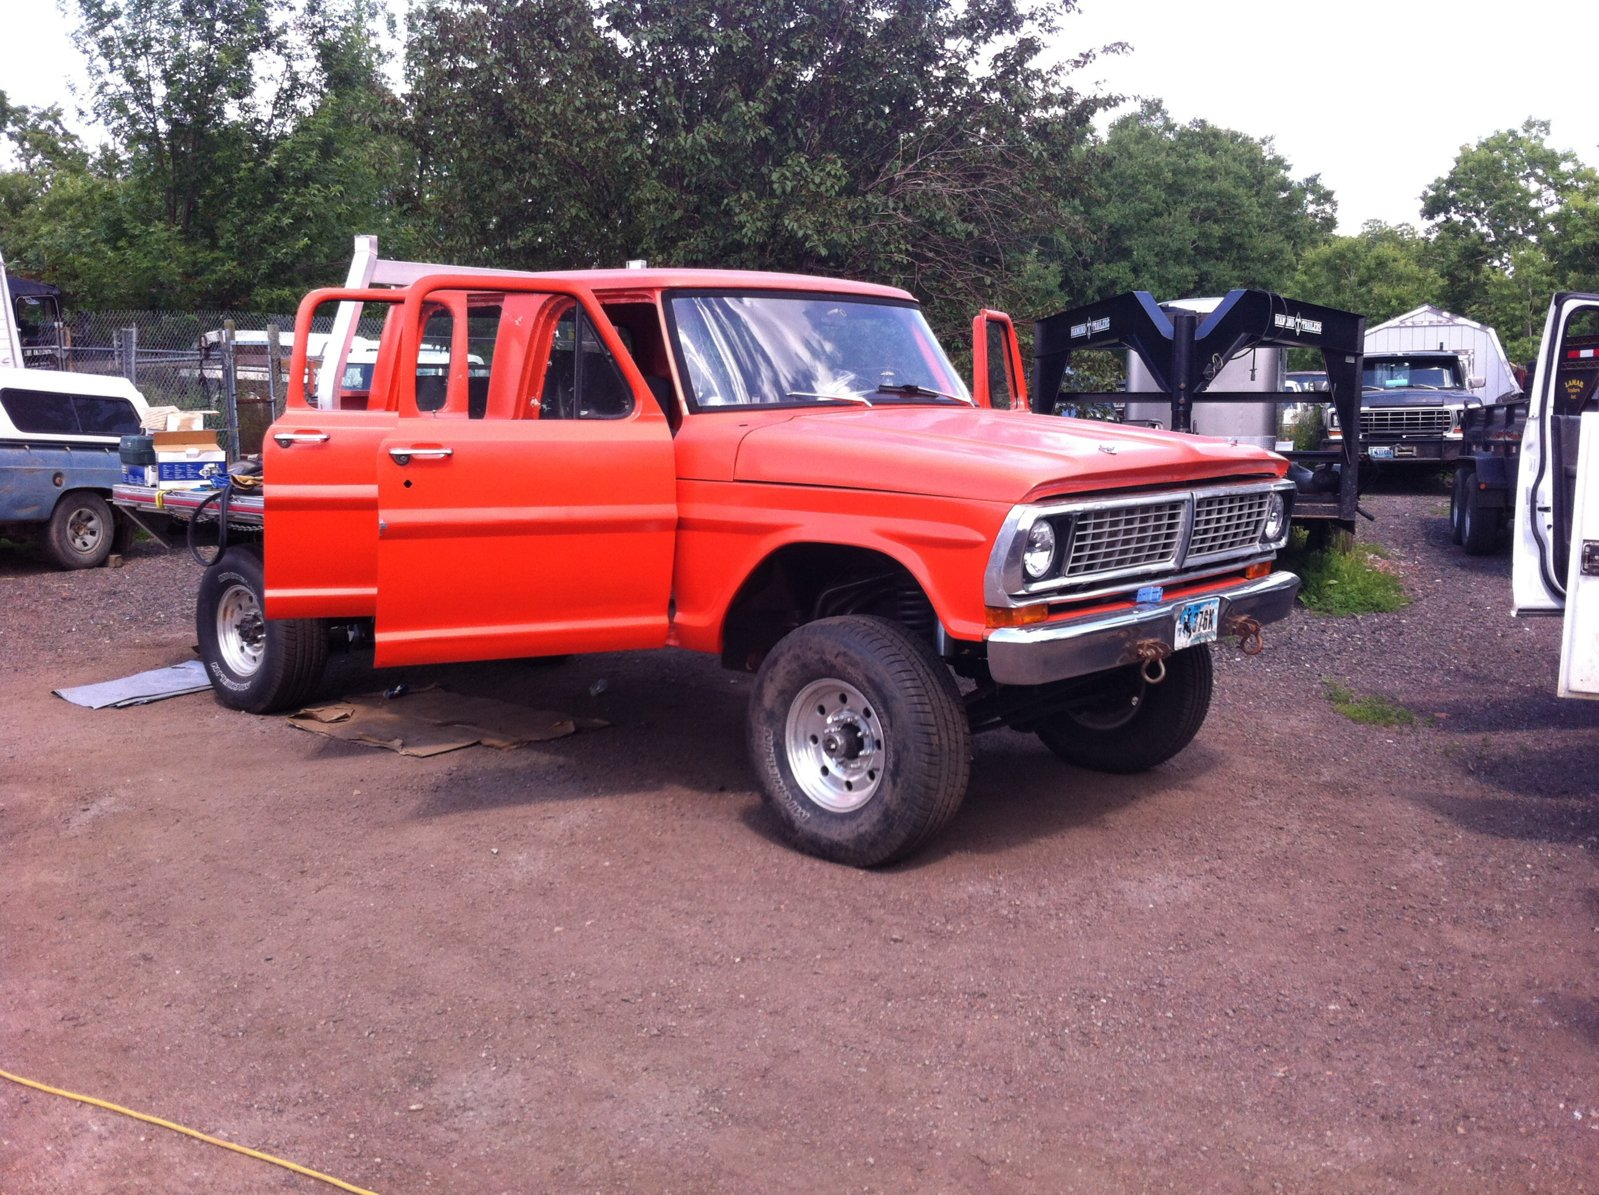 1968 To 1979 Ford Trucks Photos Page 8 Race Dezert 1970 Ranger Camper Special My Crew 4x4 Linked Front Suspension 66 Leafs Rear Overdrive Fuel Injected Auto Fab Glass And Many Other Small Parts